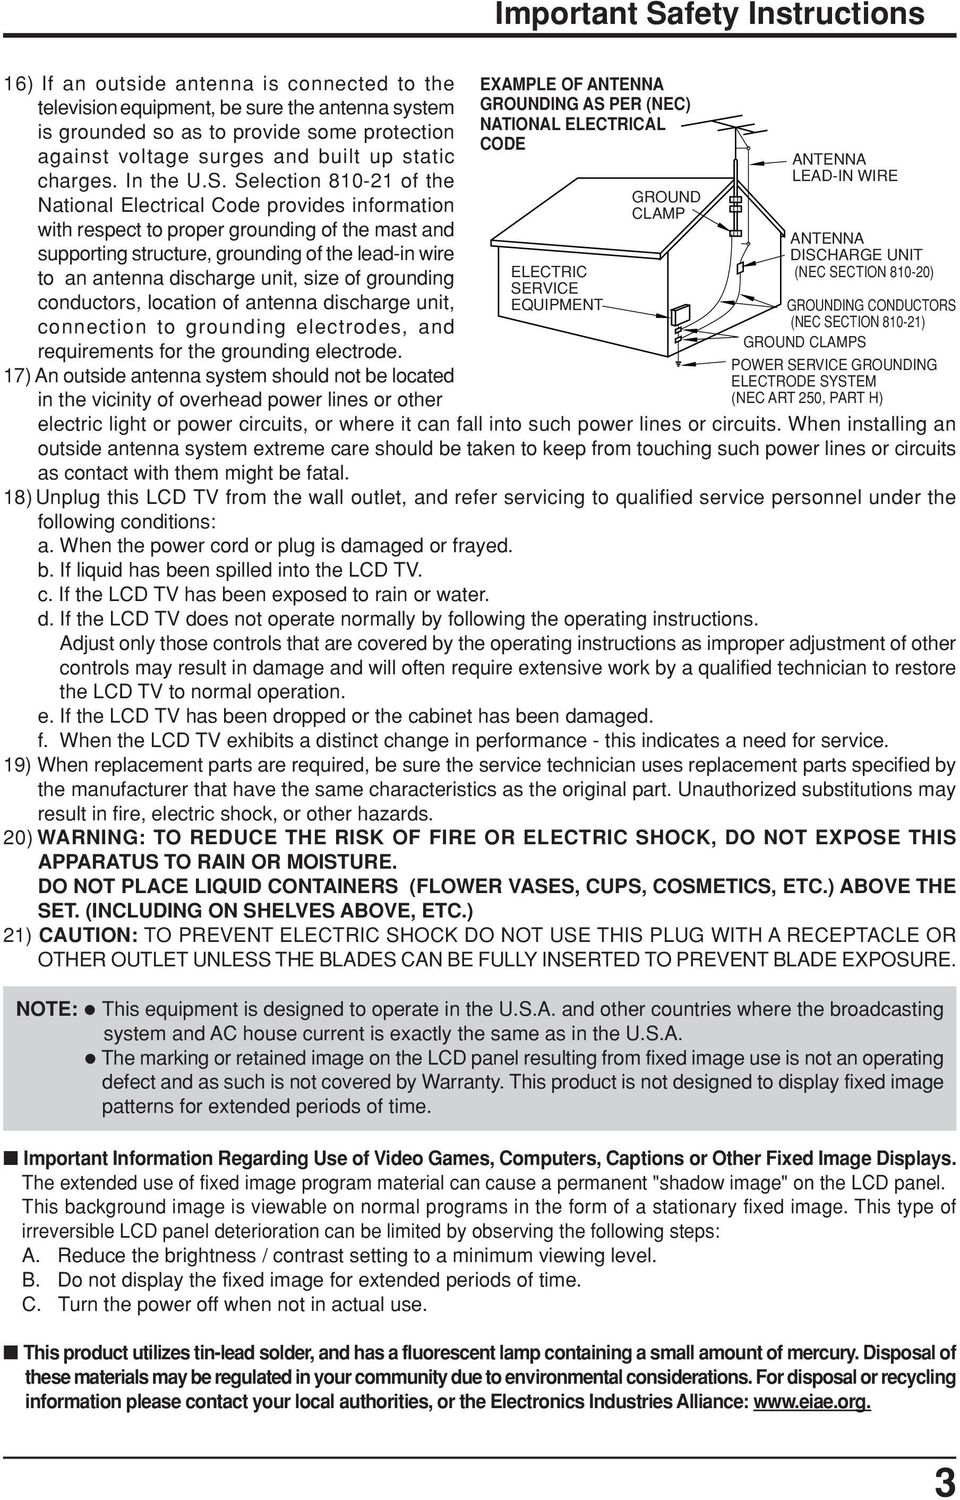 Selection 81-21 of the National Electrical Code provides information with respect to proper grounding of the mast and supporting structure, grounding of the lead-in wire to an antenna discharge unit,